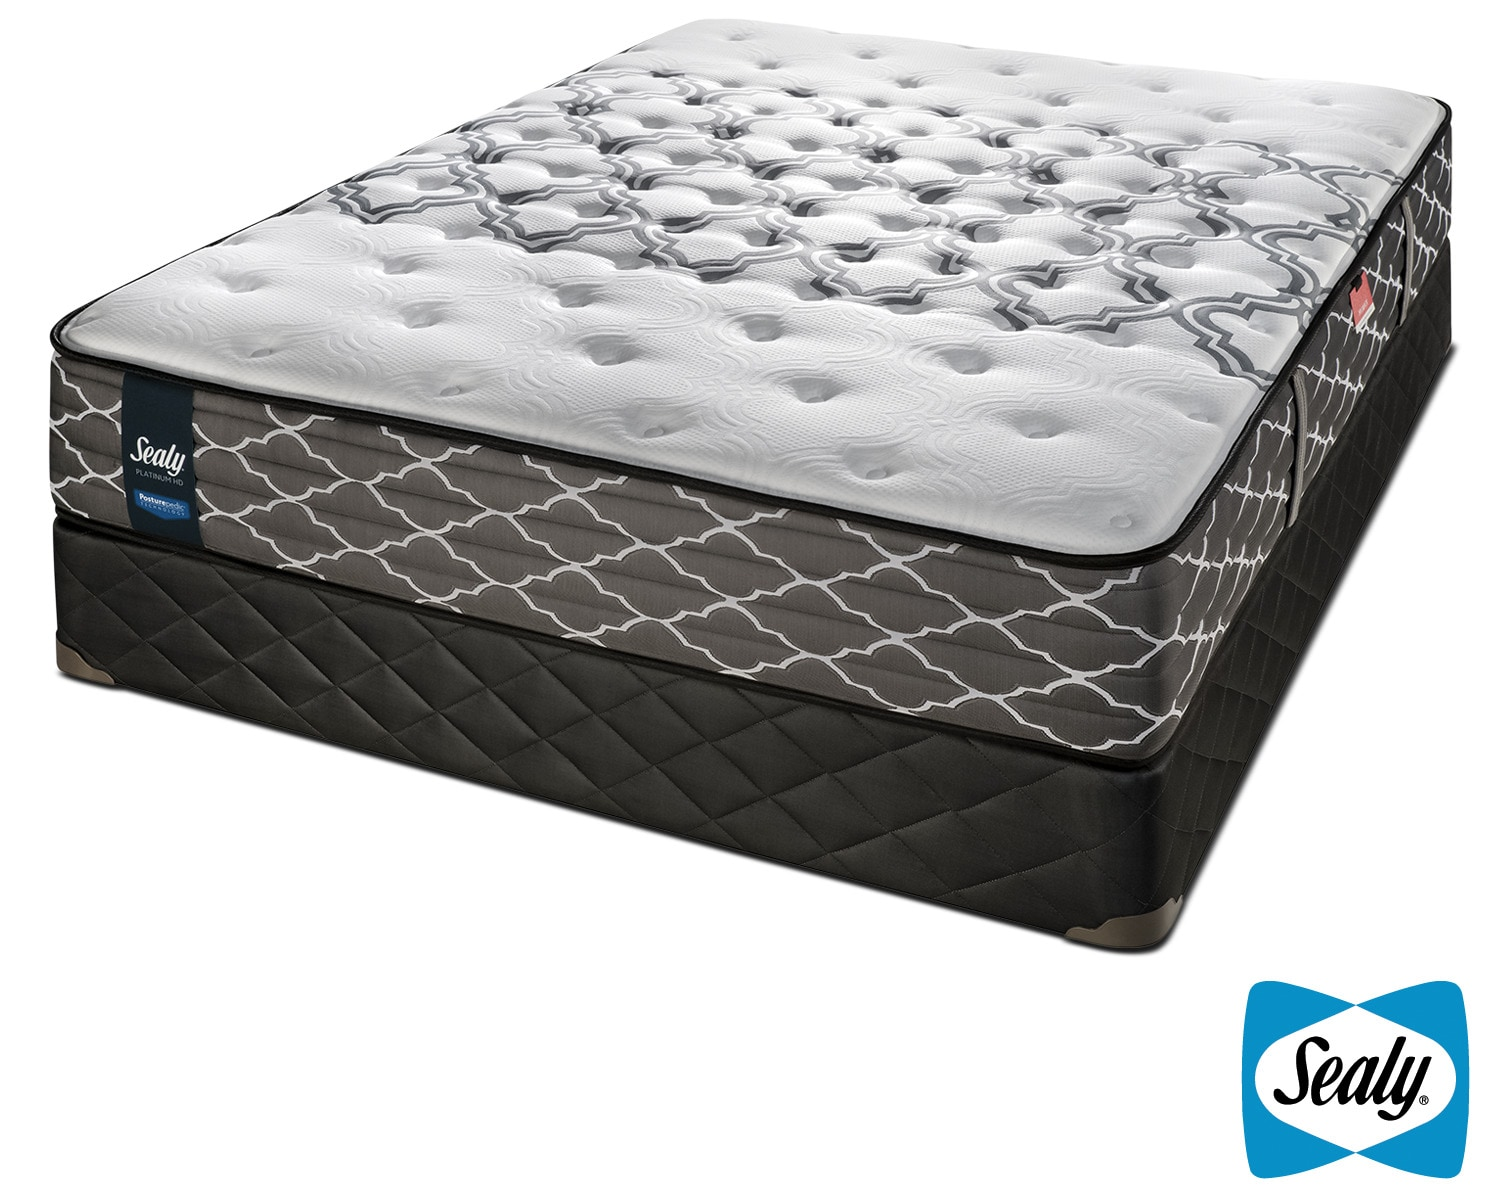 Sealy Late Night Hybrid Extra Firm Full Mattress And Boxspring Set Leon 39 S